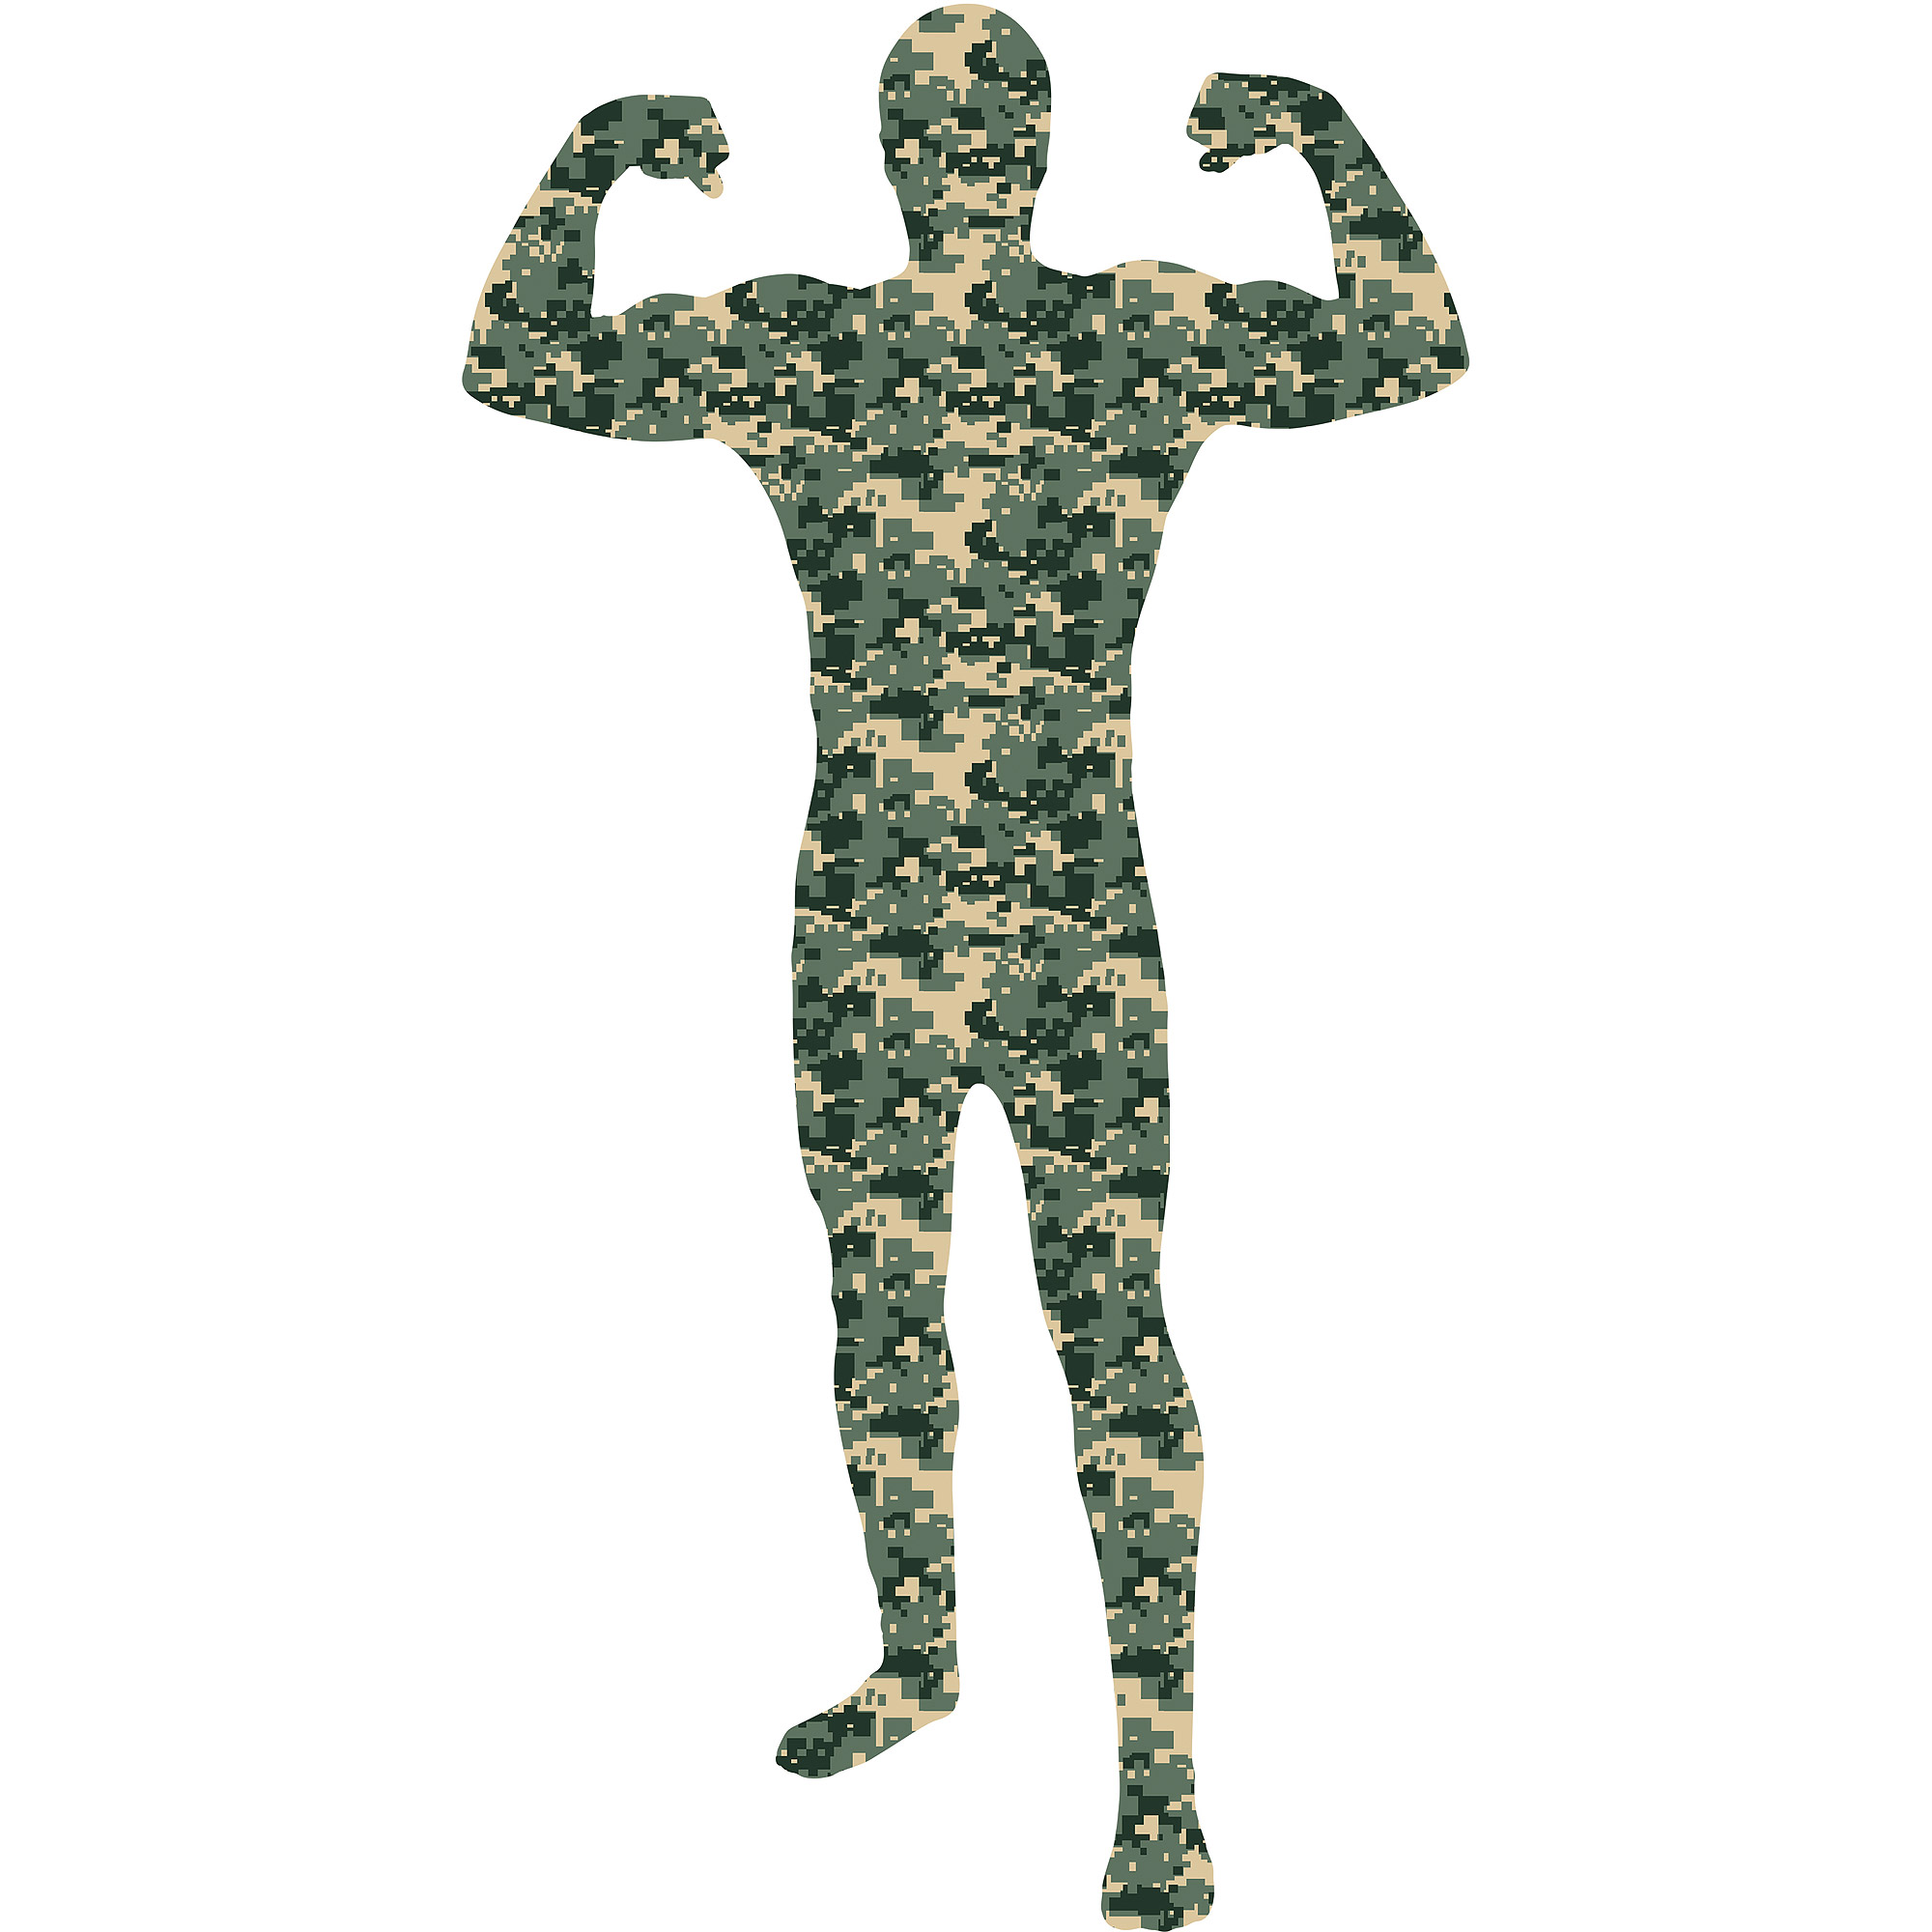 Camouflage Skin Suit Adult Halloween Dress Up / Role Play Costume ...